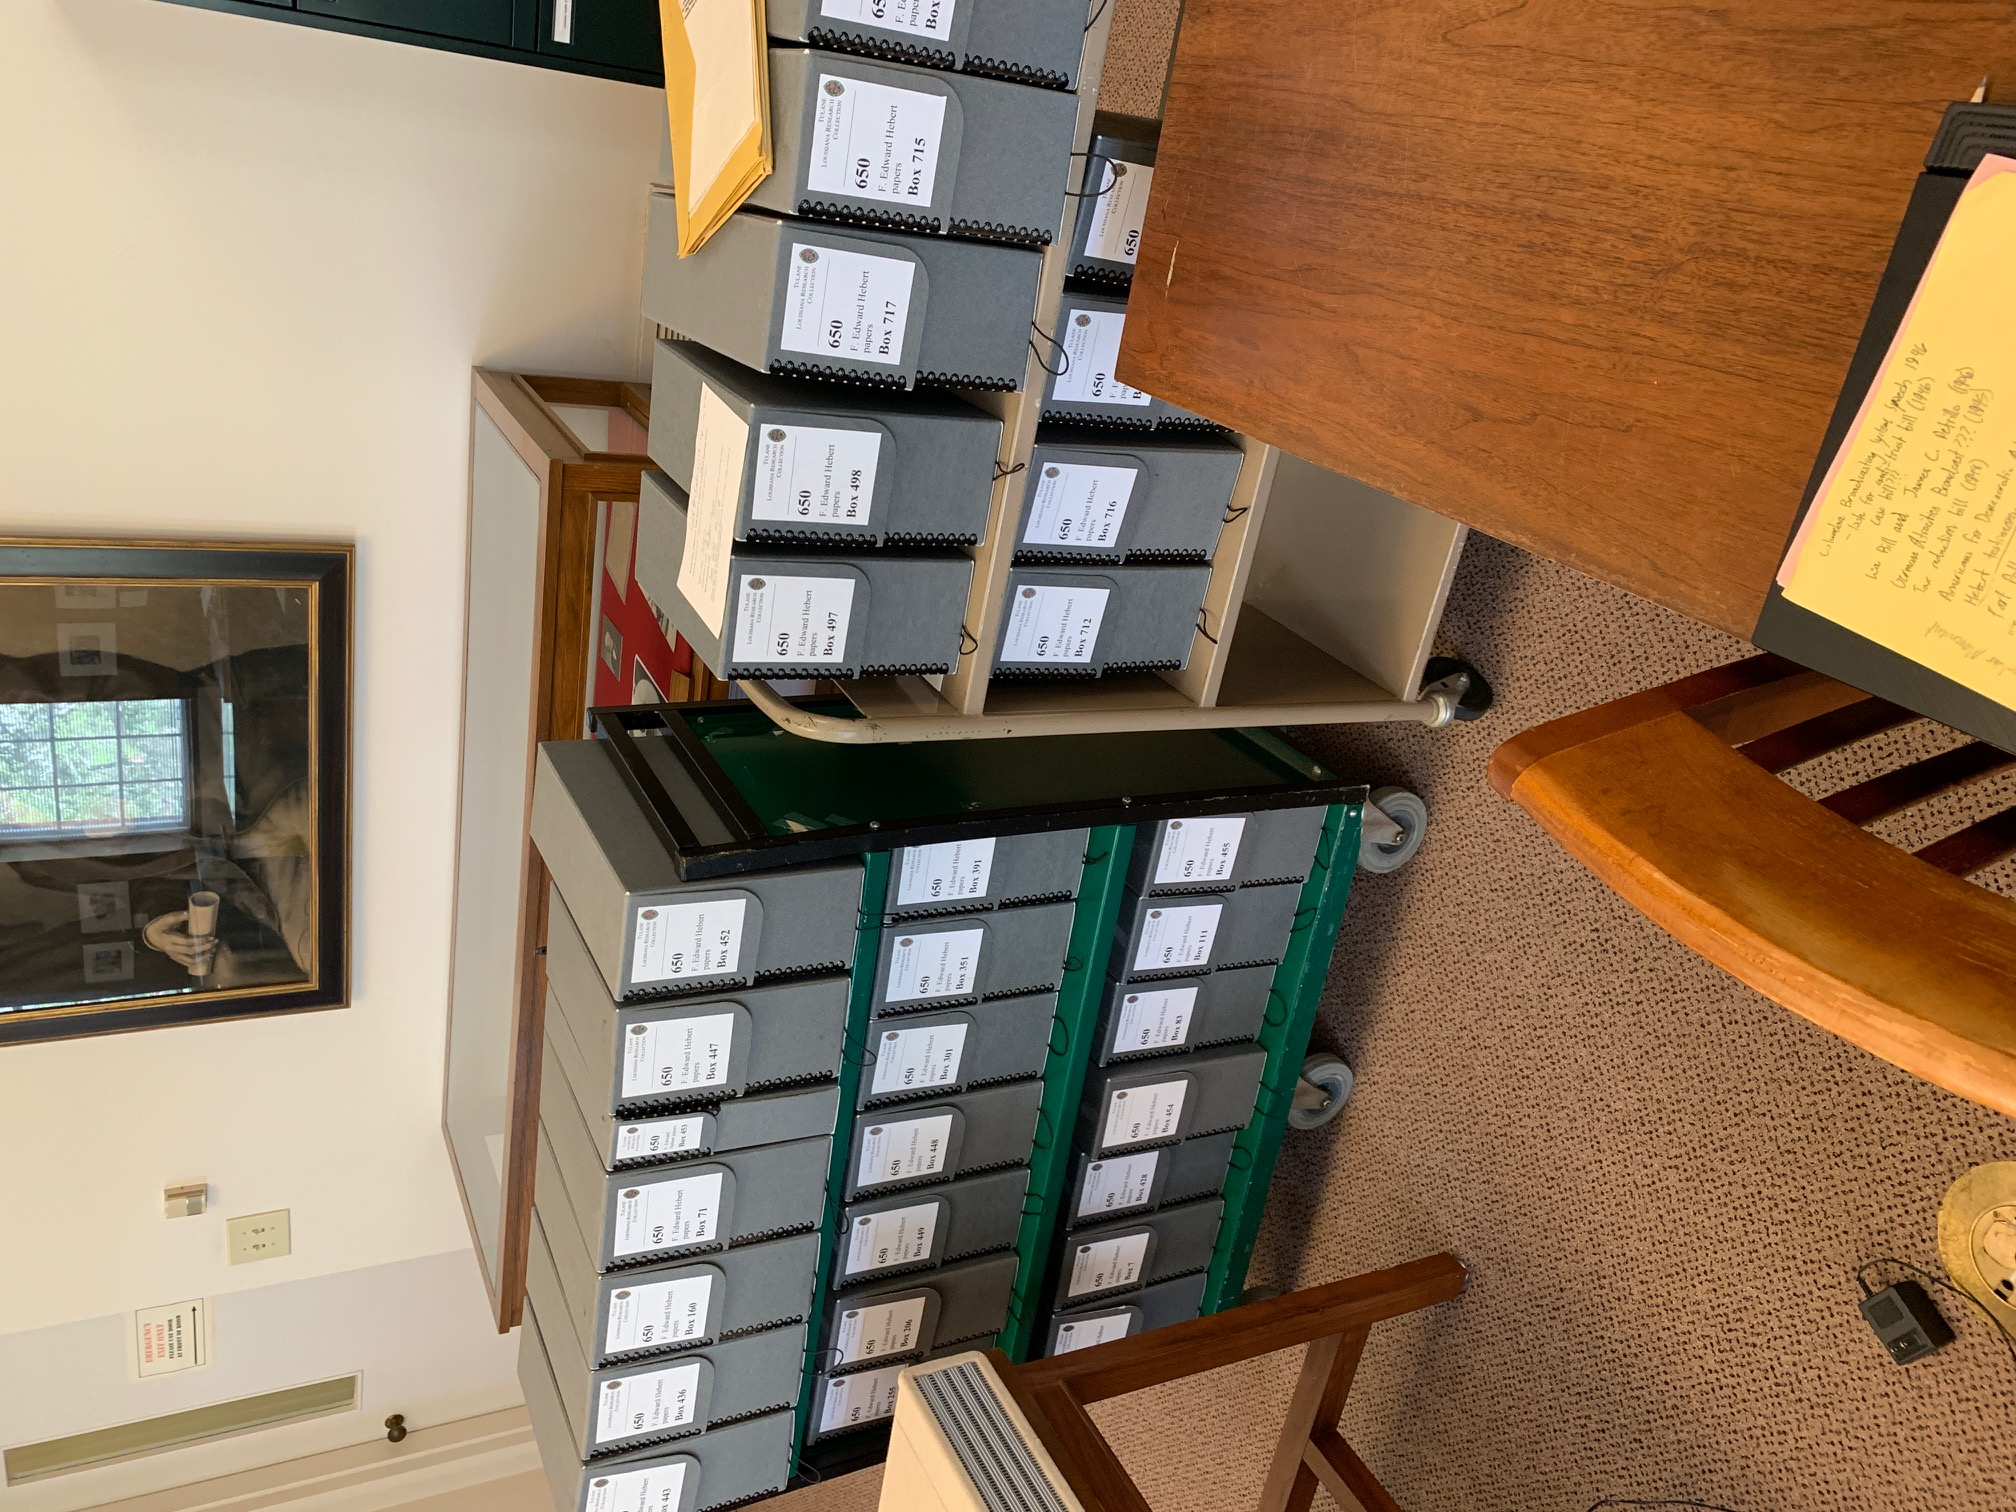 Boxes of research material